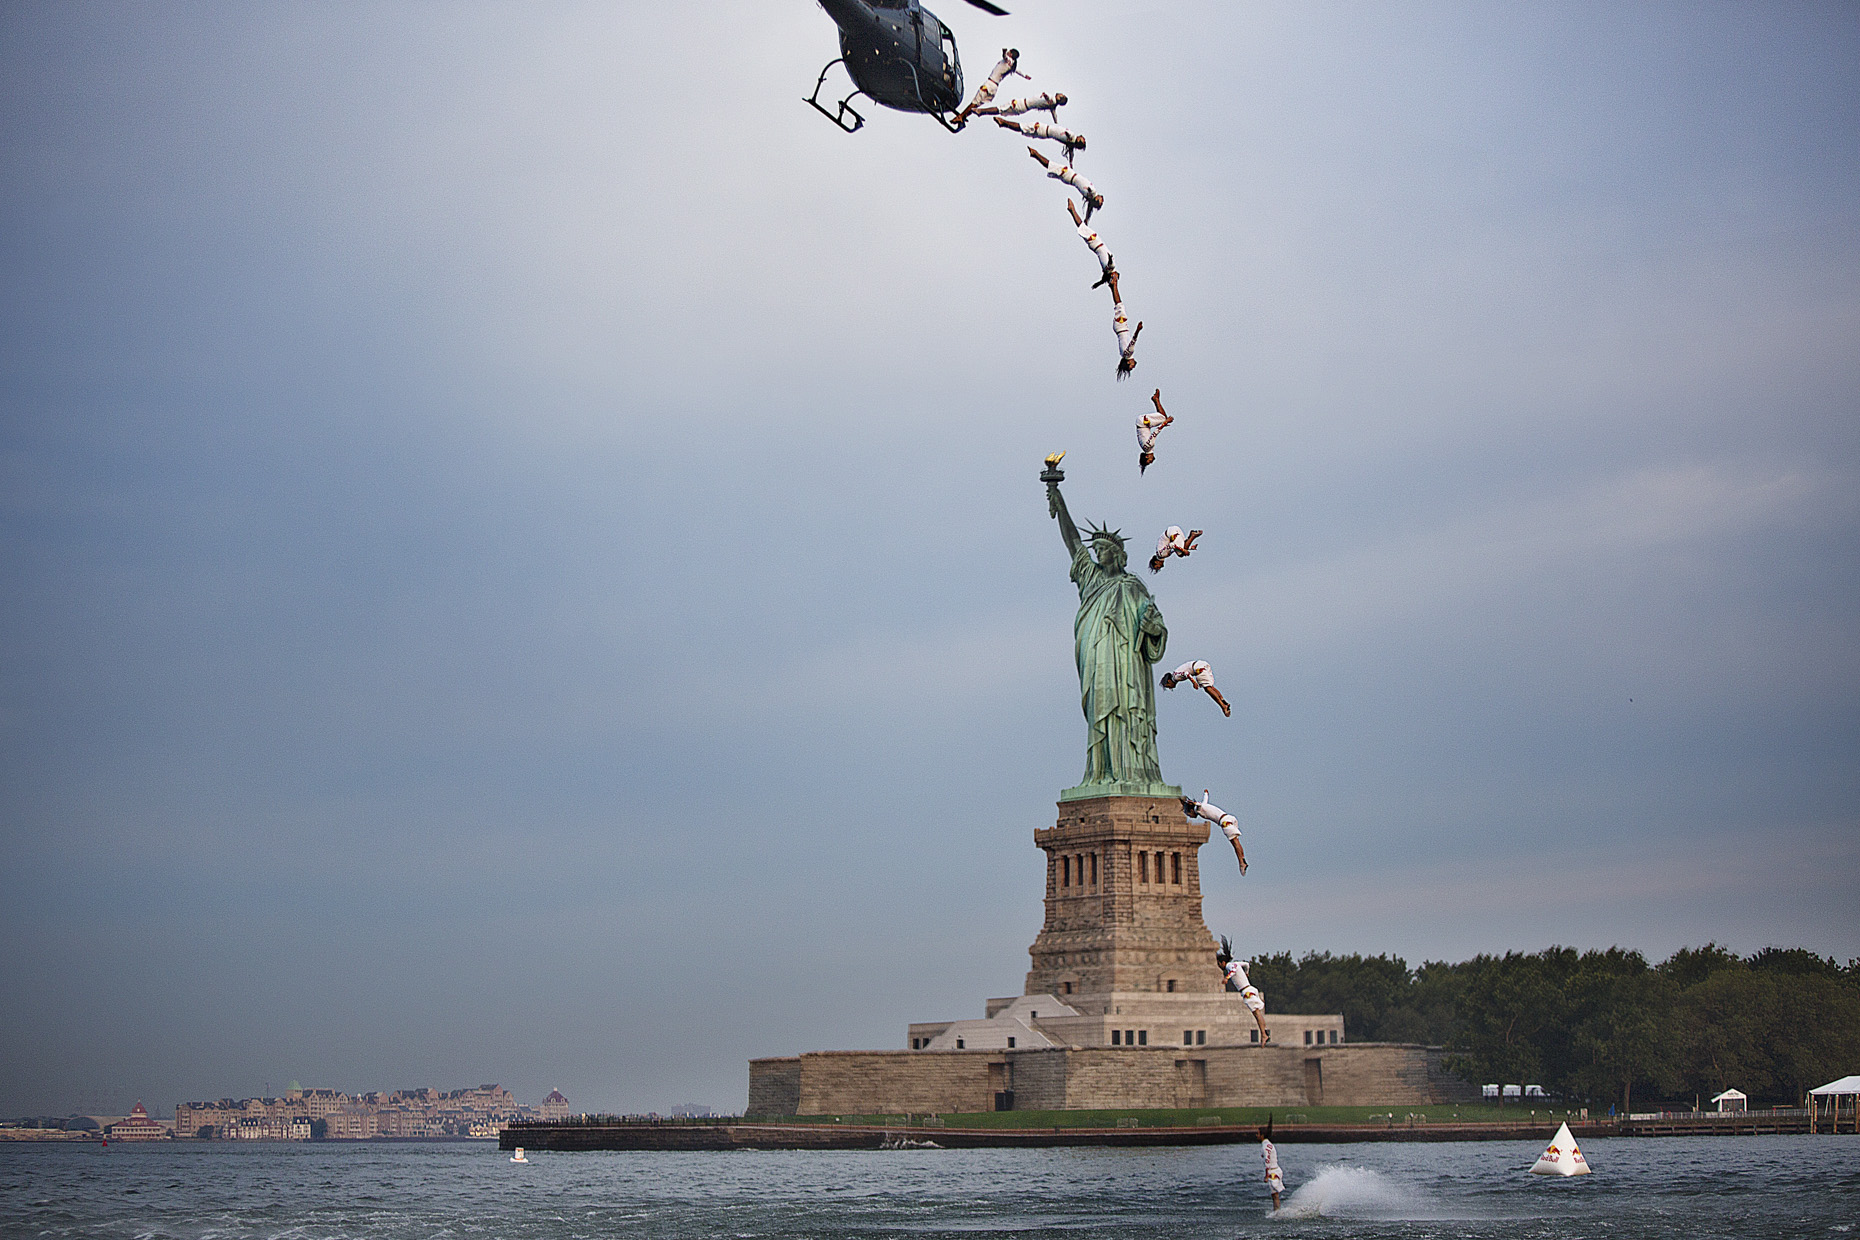 Orlando Duque cliff dives in front of the statue of Liberty in NYC for Red Bull by Boston based commercial sports photographer Brian Nevins